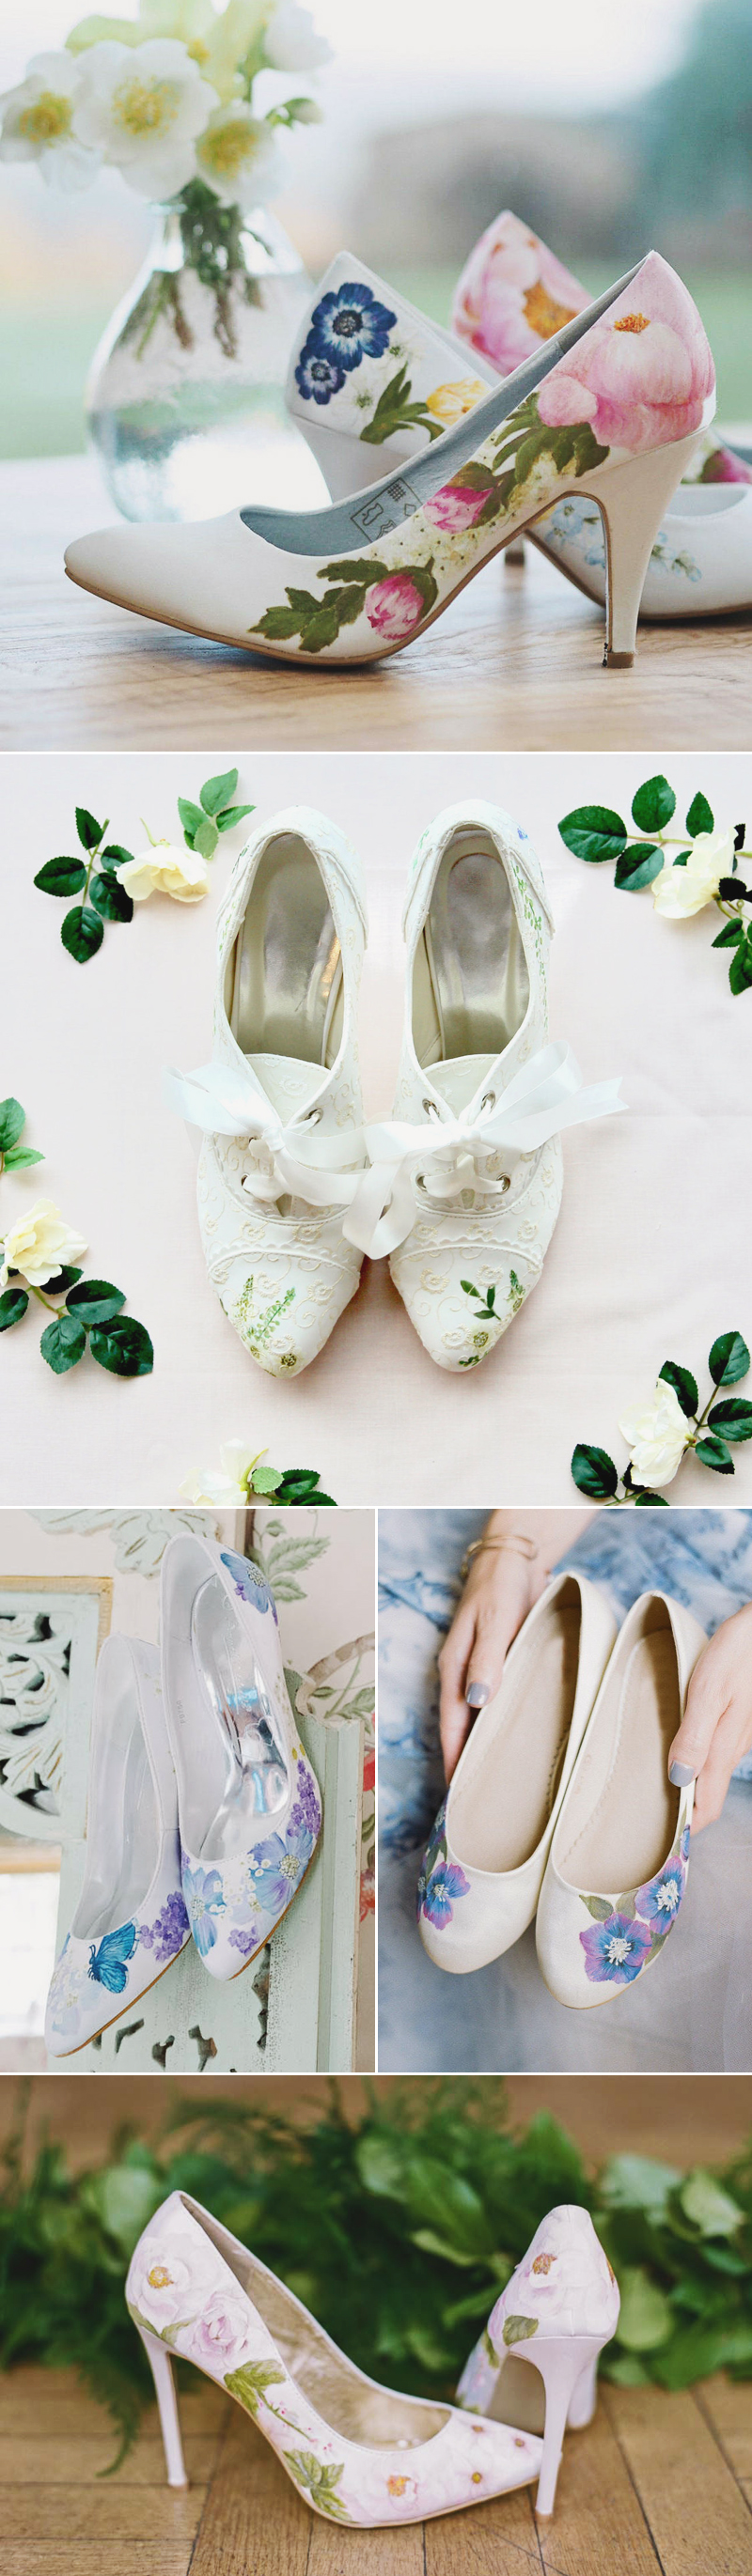 customizedweddingshoes02-ElizabethRose